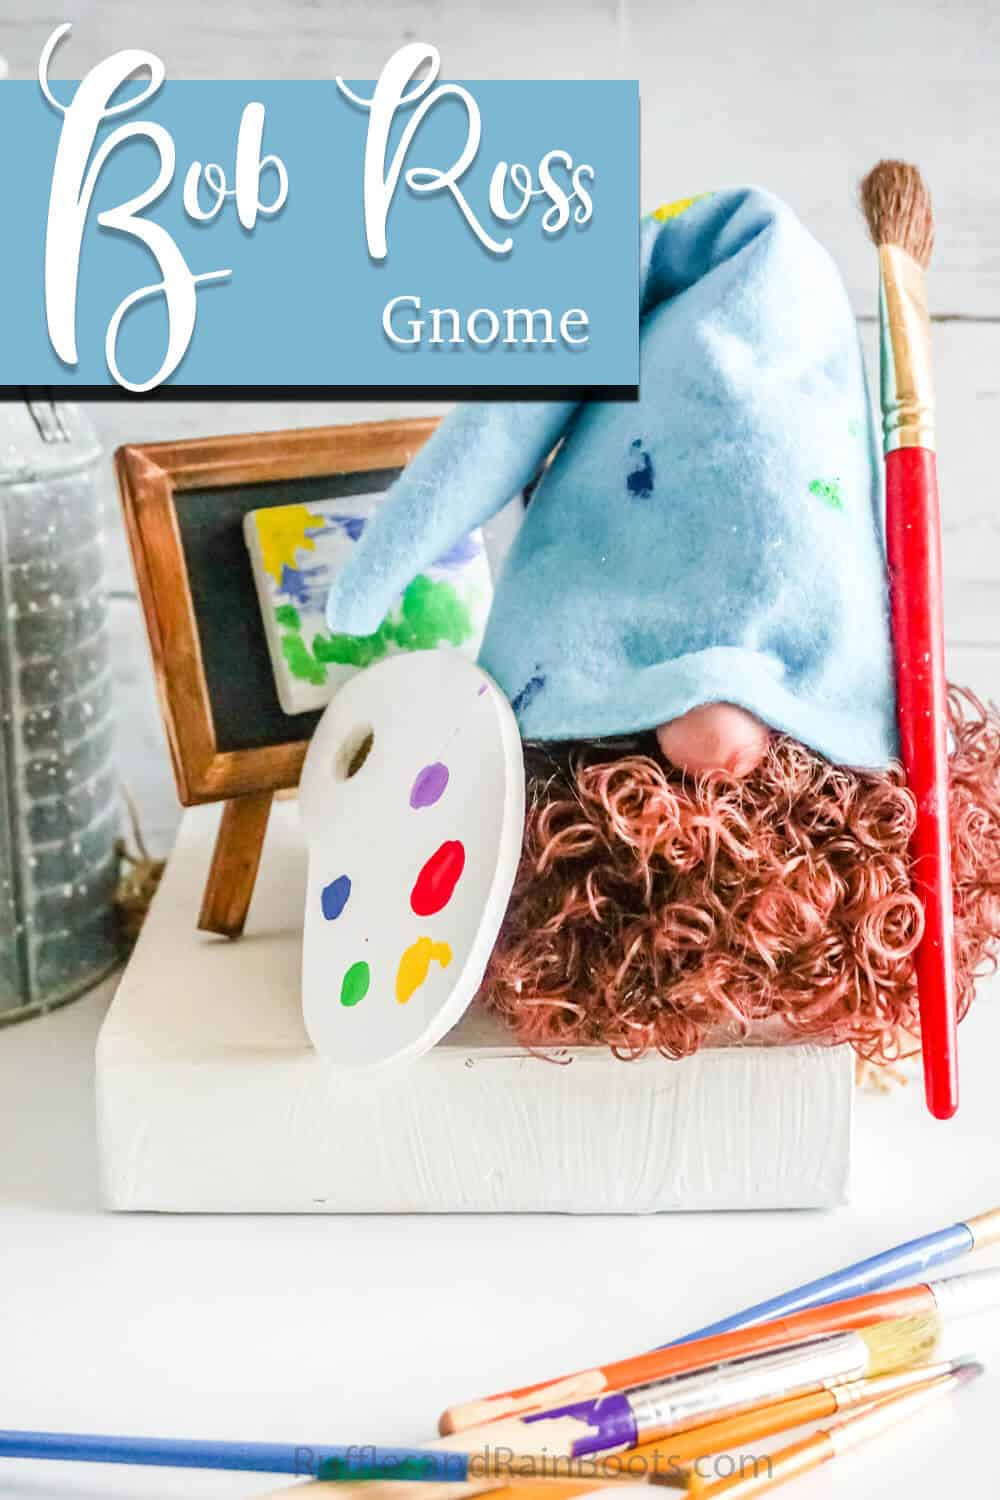 easy gnome pattern for a sock gnome with curly hair with text which reads bob ross gnome